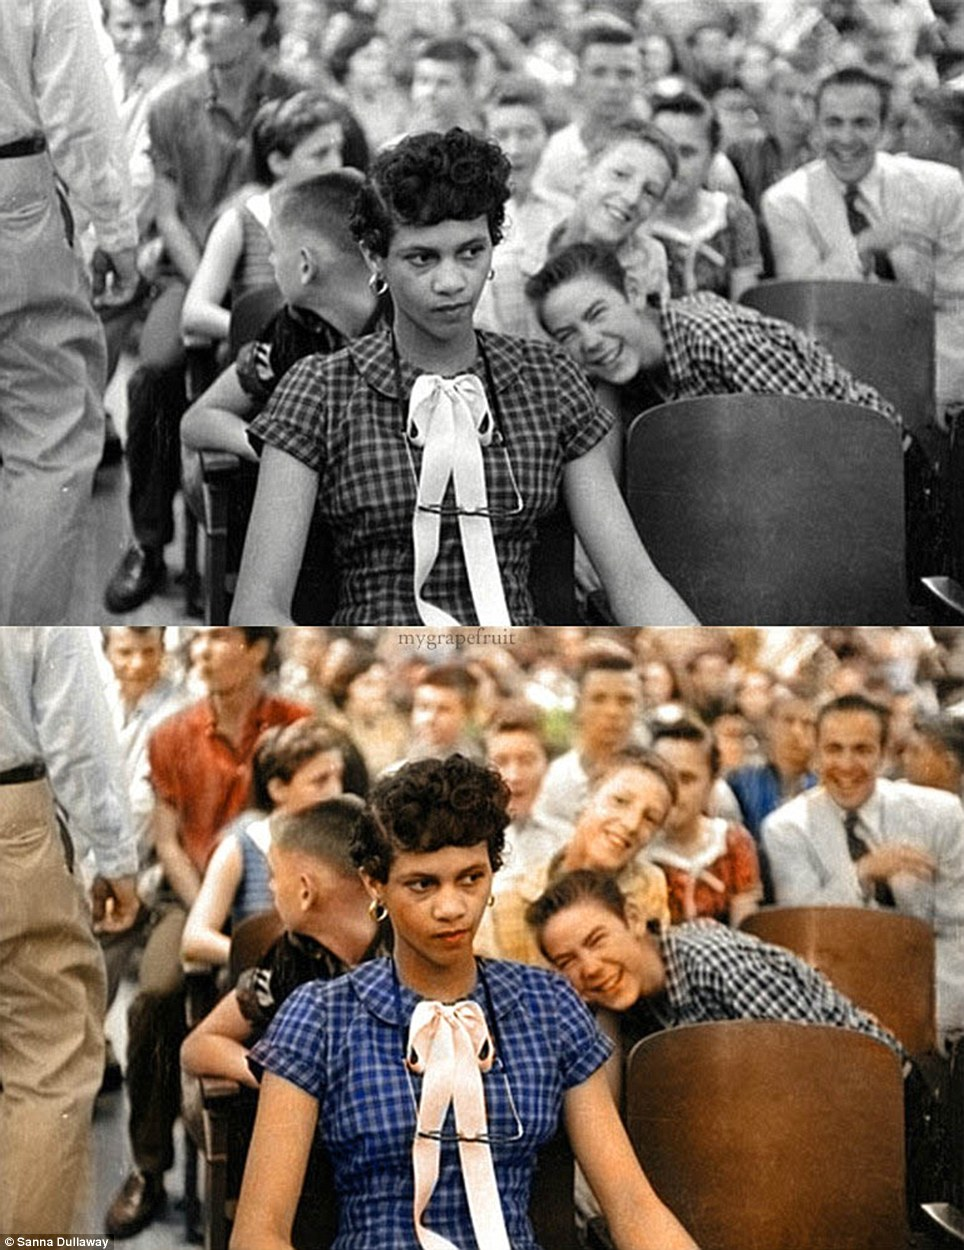 solwos: who-is-madonna: graphitetroll: haitian-sensati0n: blackorchidd: harrietsrevenge: thisiswhiteculture: Never forget…Dorothy Counts being mocked by an entirely white audience on enrollment day at Harding High School. September 4th, 1957 and they call US savages Never fucking forget Never Never forget The people in this photo are SOME OF YA'LLS GRANDPARENTS. Not your great great great great grandparents. Your GRANDPARENTS. Your dad's dad. these could easily be parents as well. Heart-crushing.